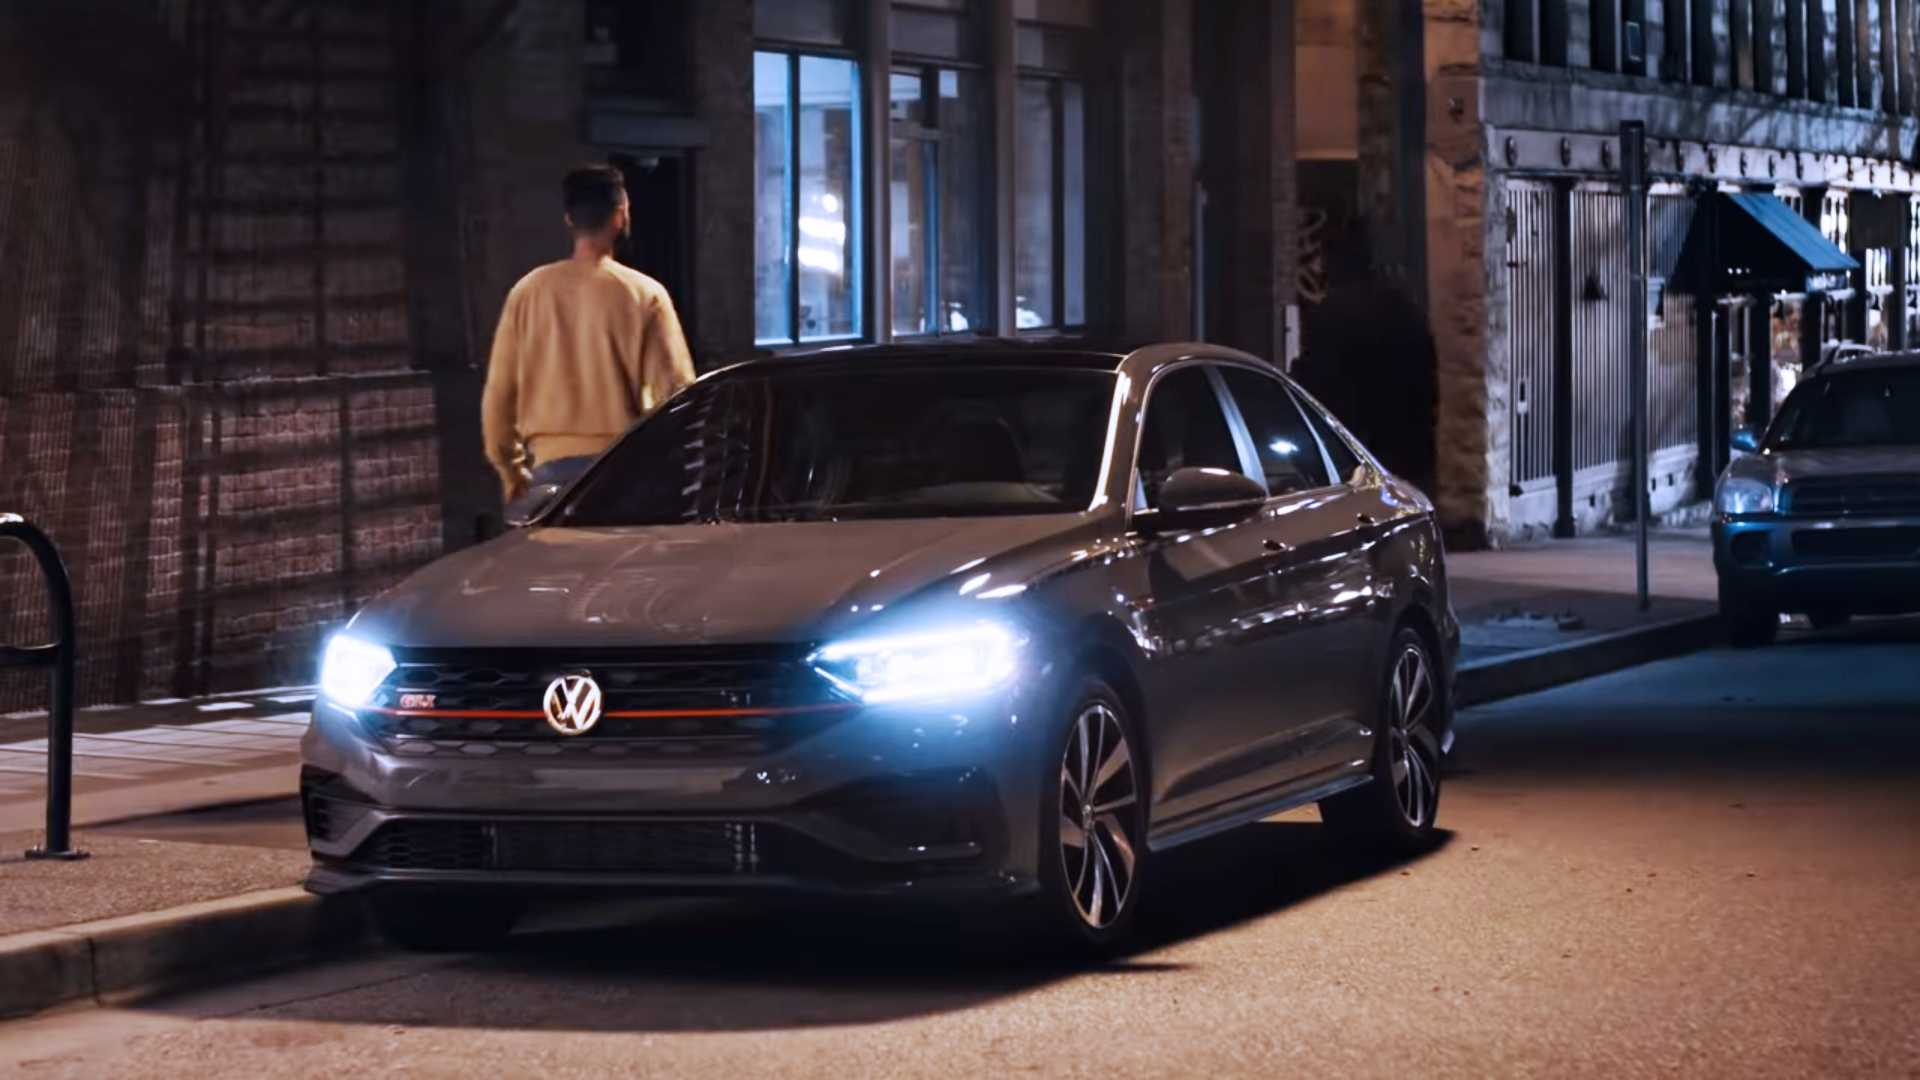 Vw Jetta Gli Ad Sees The Manual Transmission As Anti Theft Device